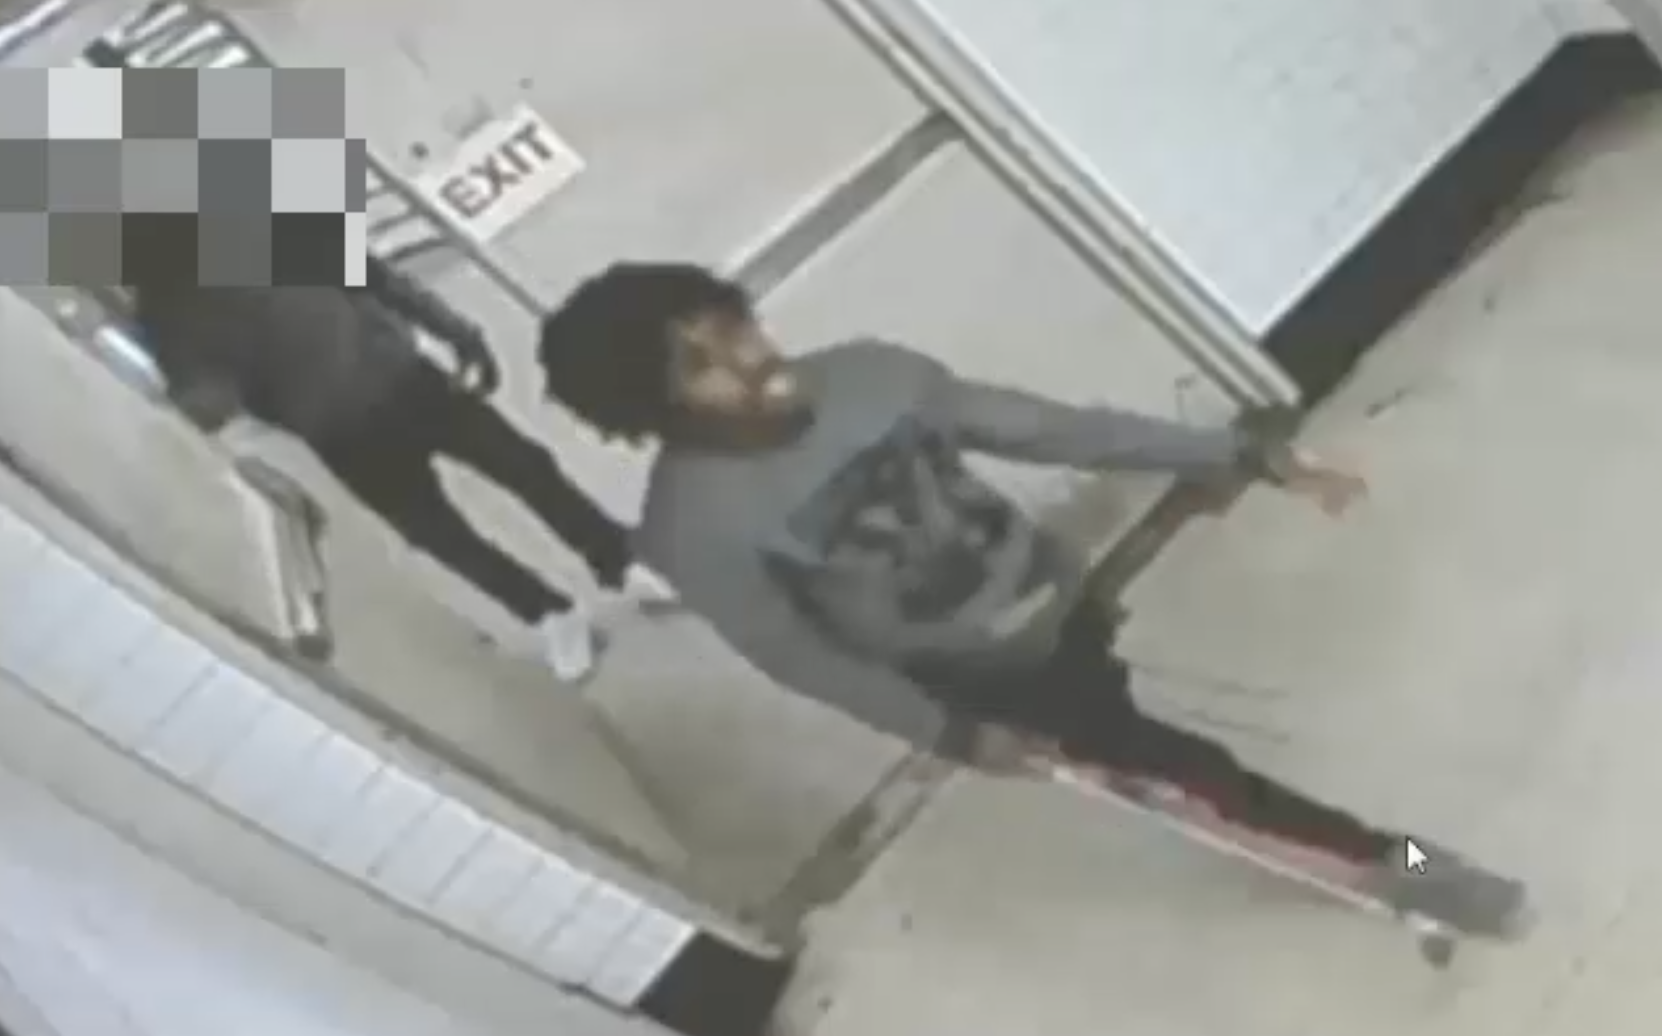 Man punches MTA employee in Queens Plaza subway station and chases him with a golf club: NYPD